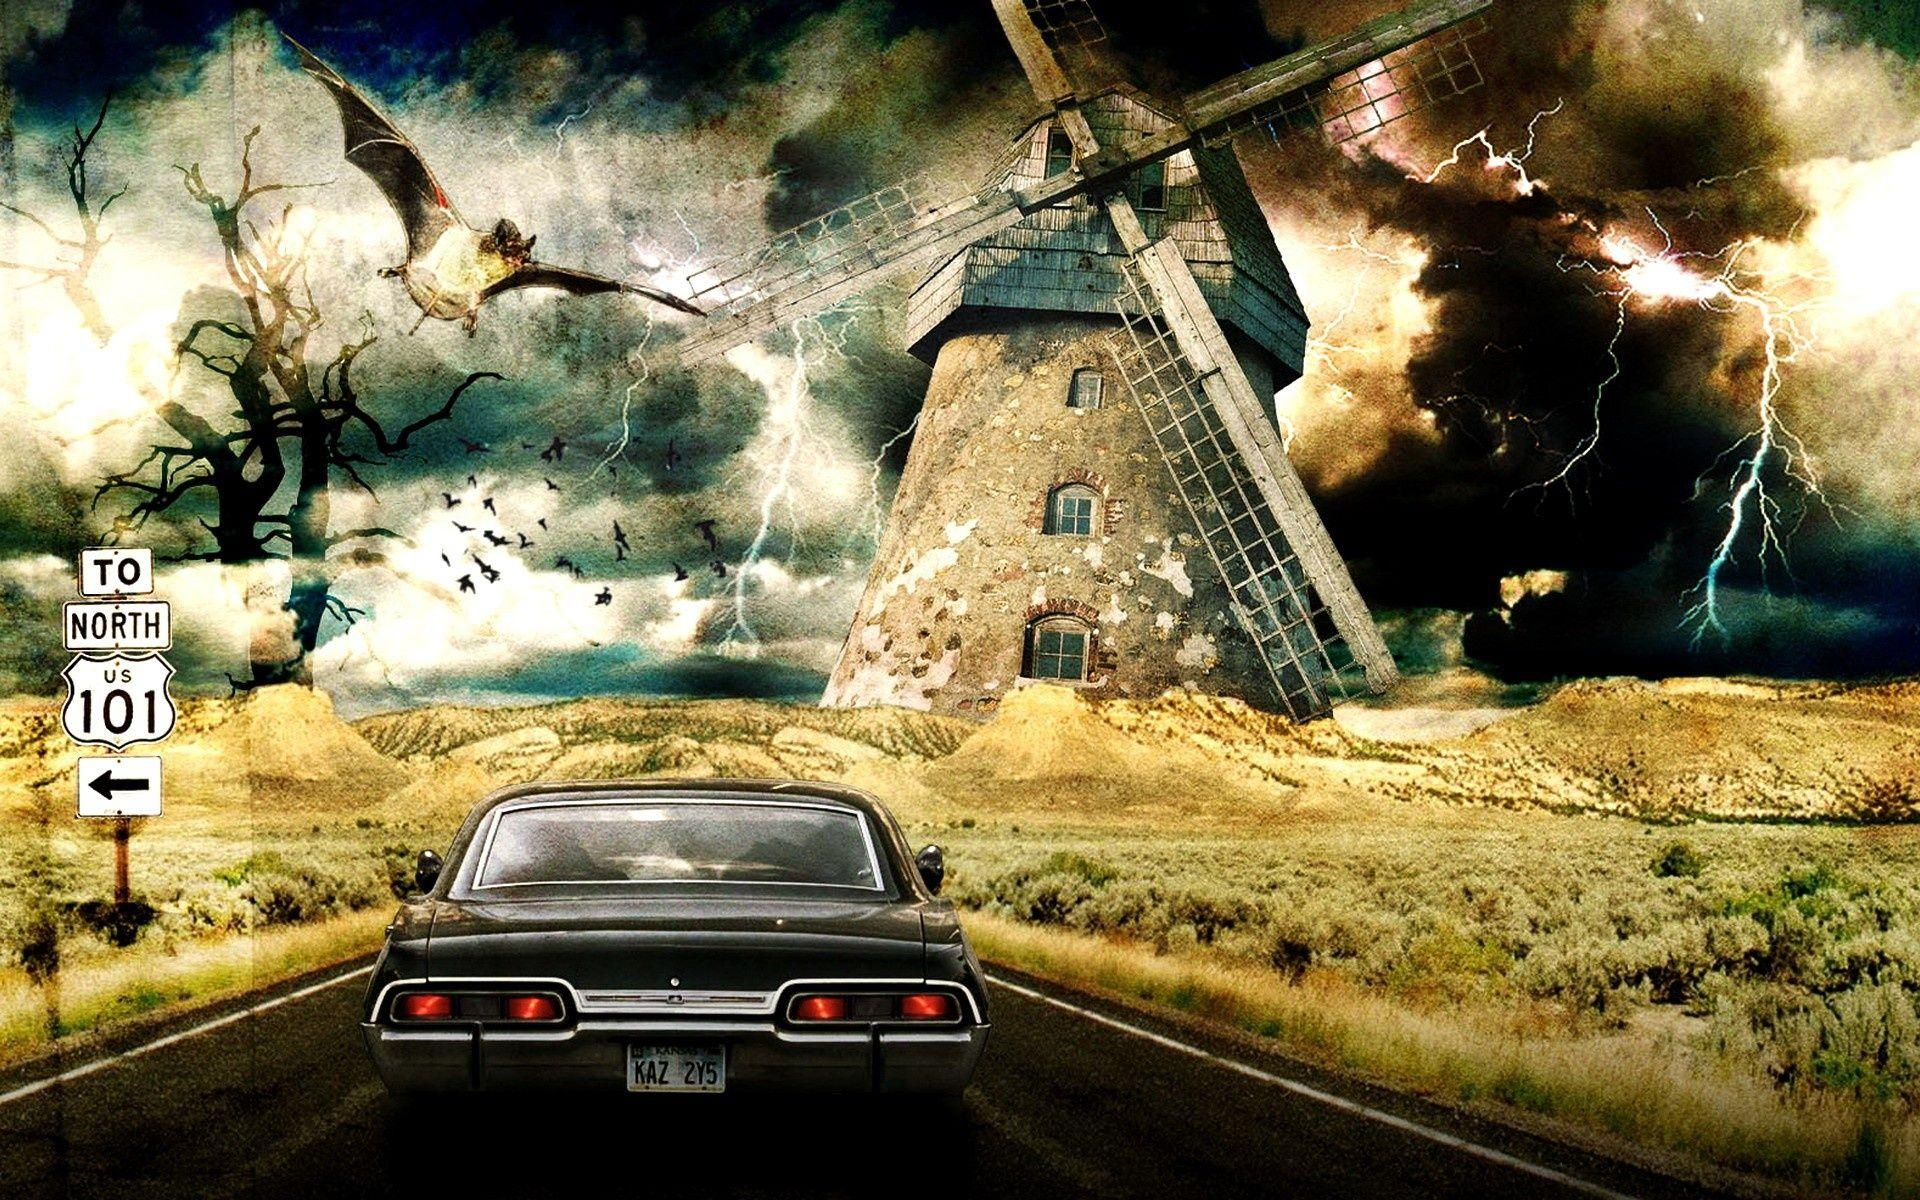 Supernatural wallpapers and image